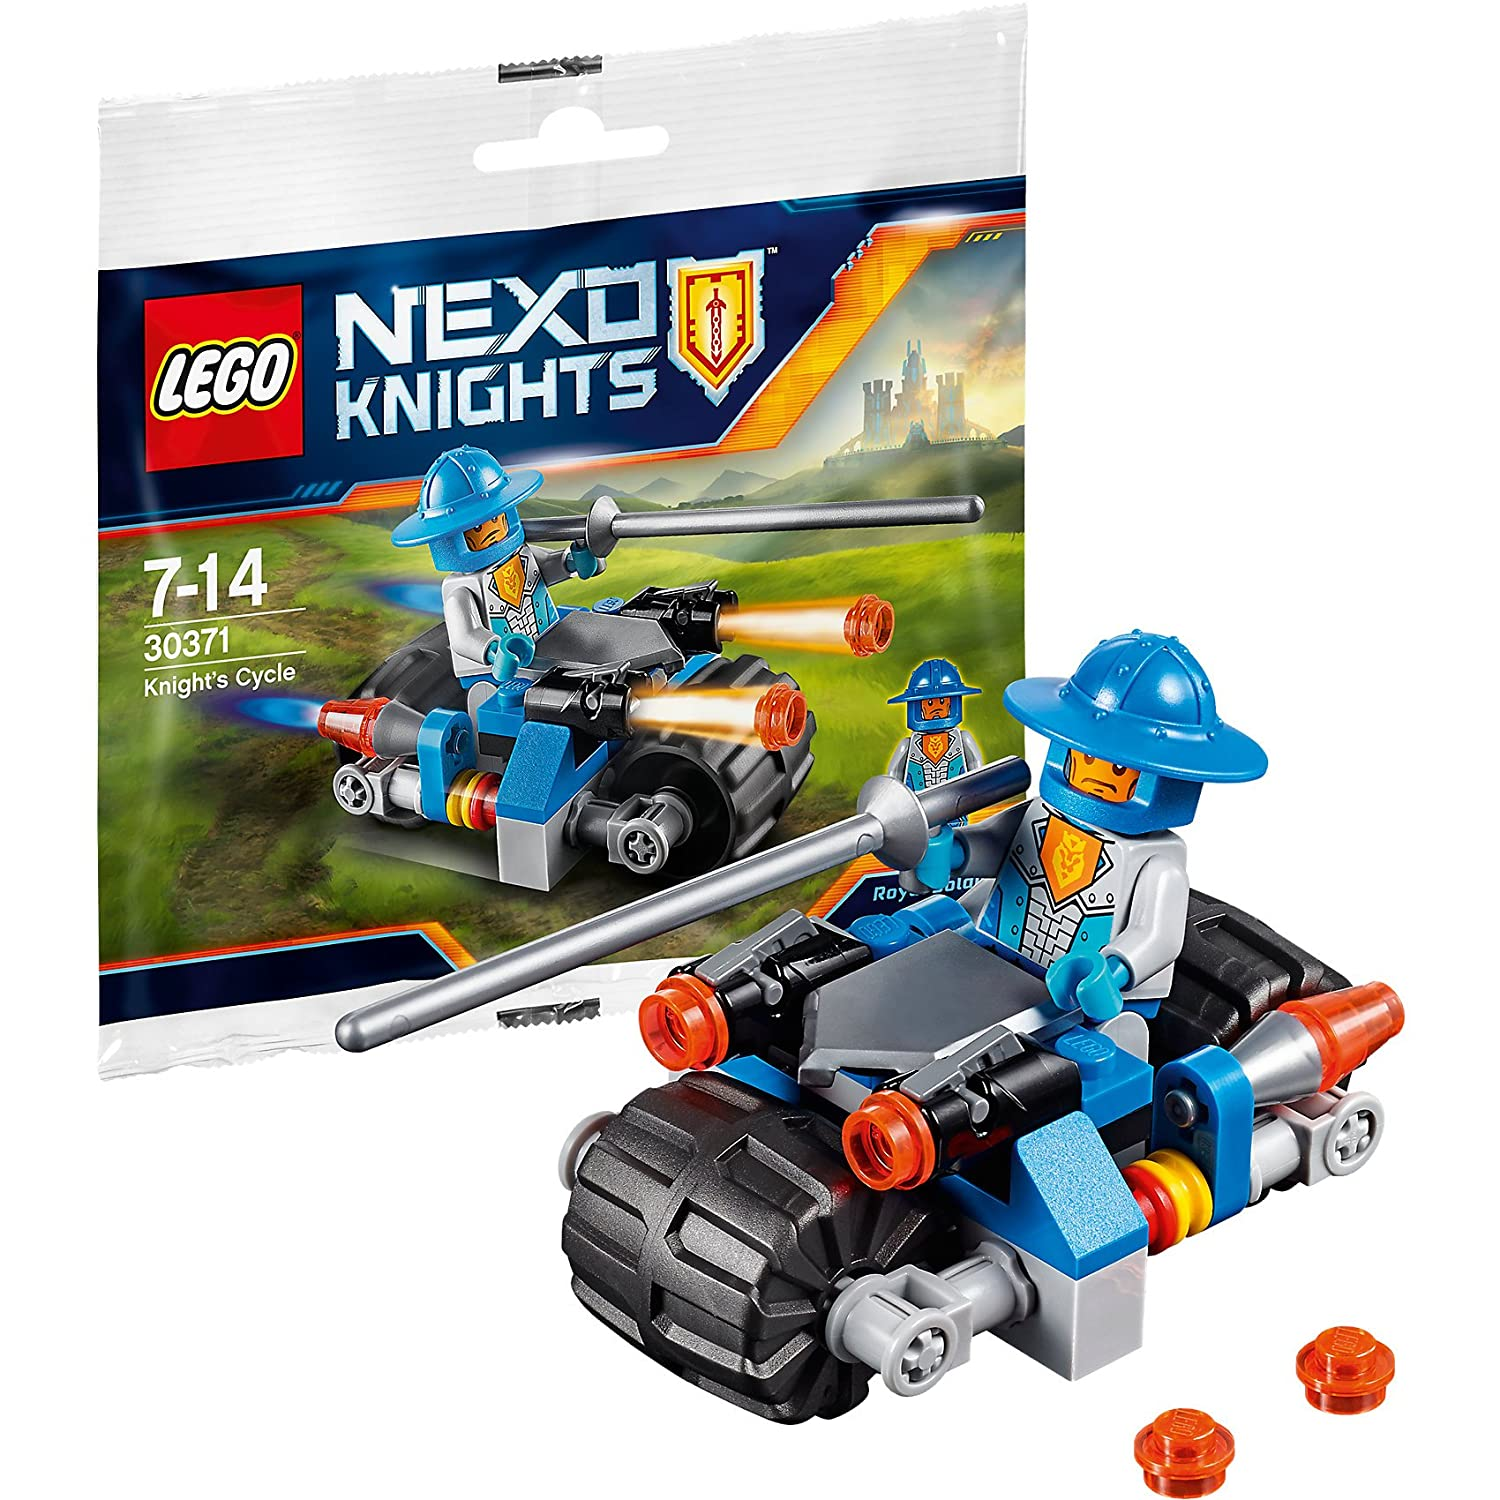 Knights Cycle Lego 30371 Nexo Knights